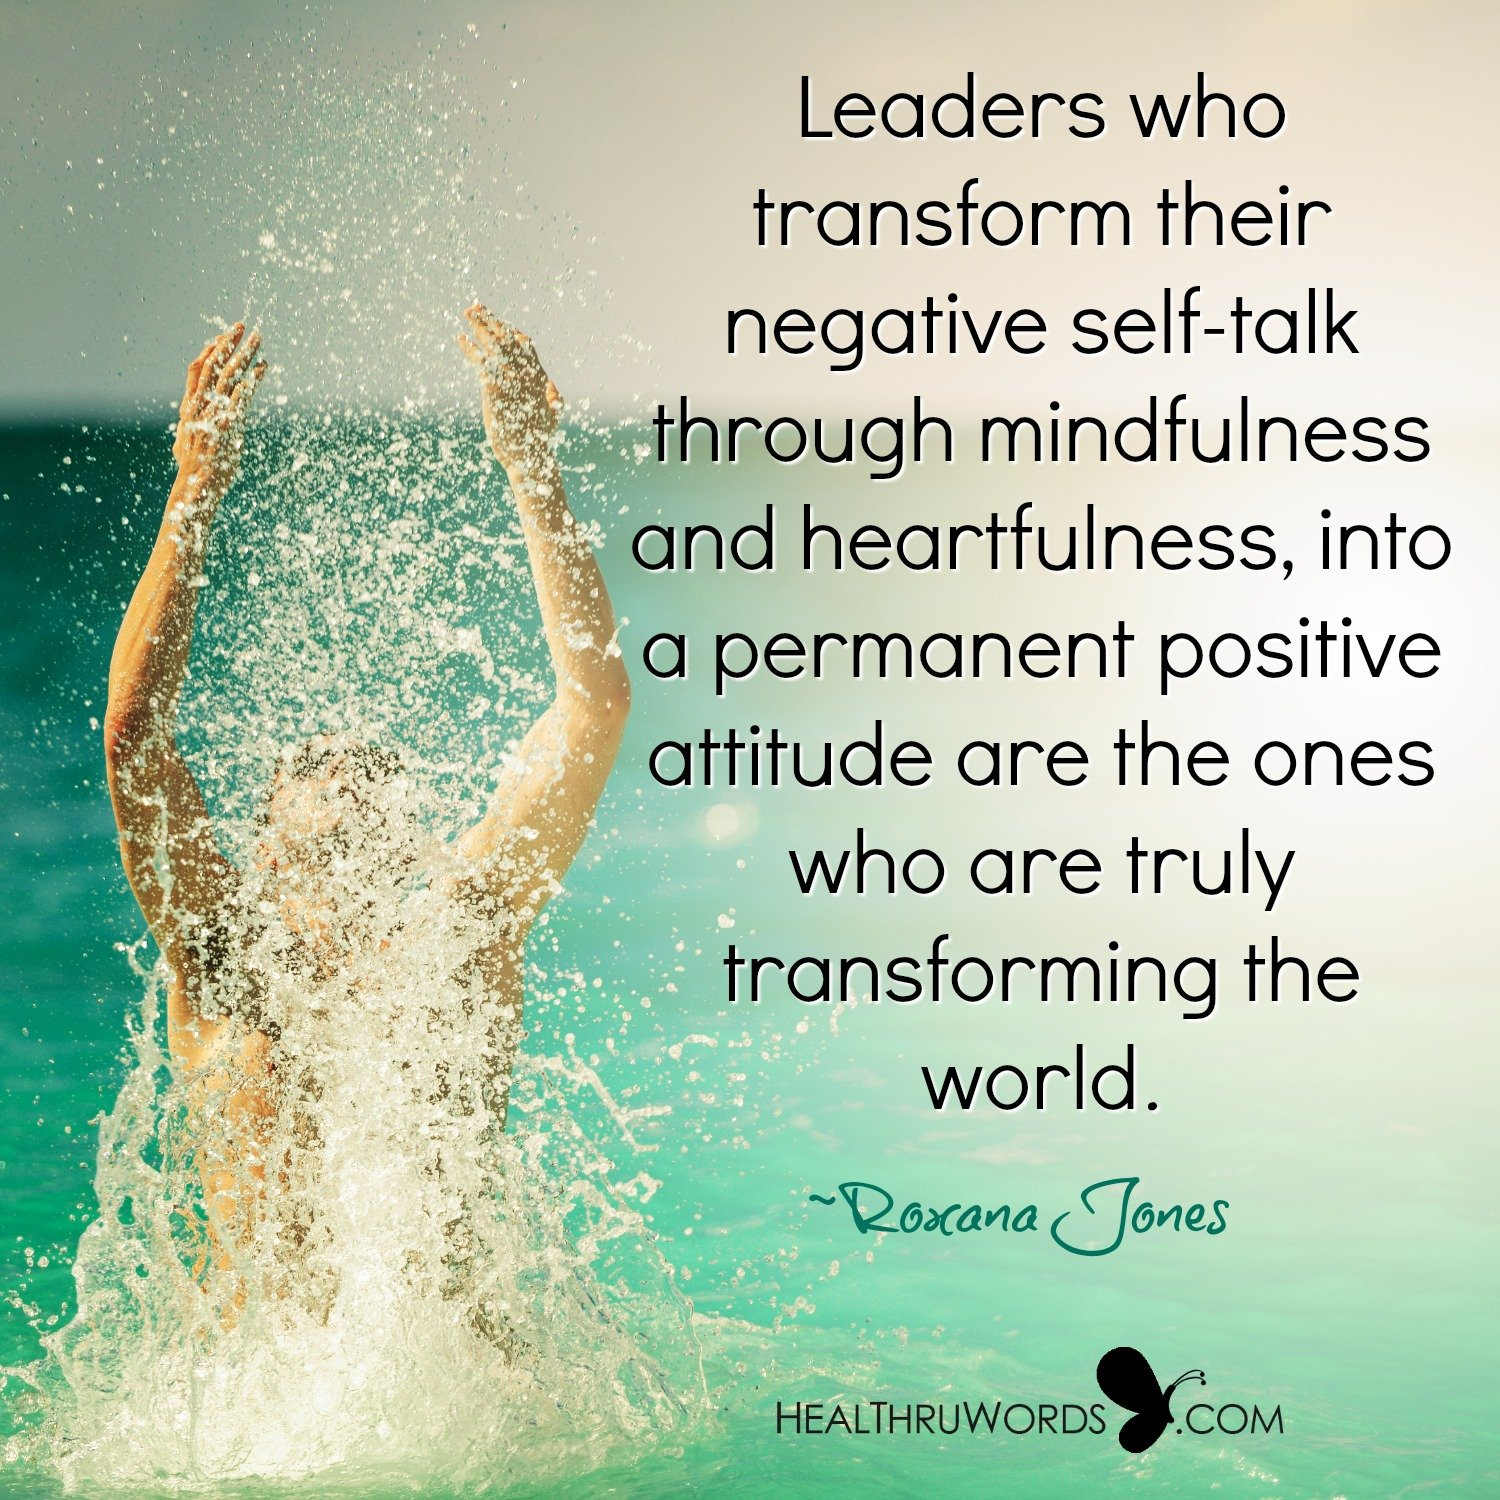 Inspirational Image: Mindful and Heartful Leaders